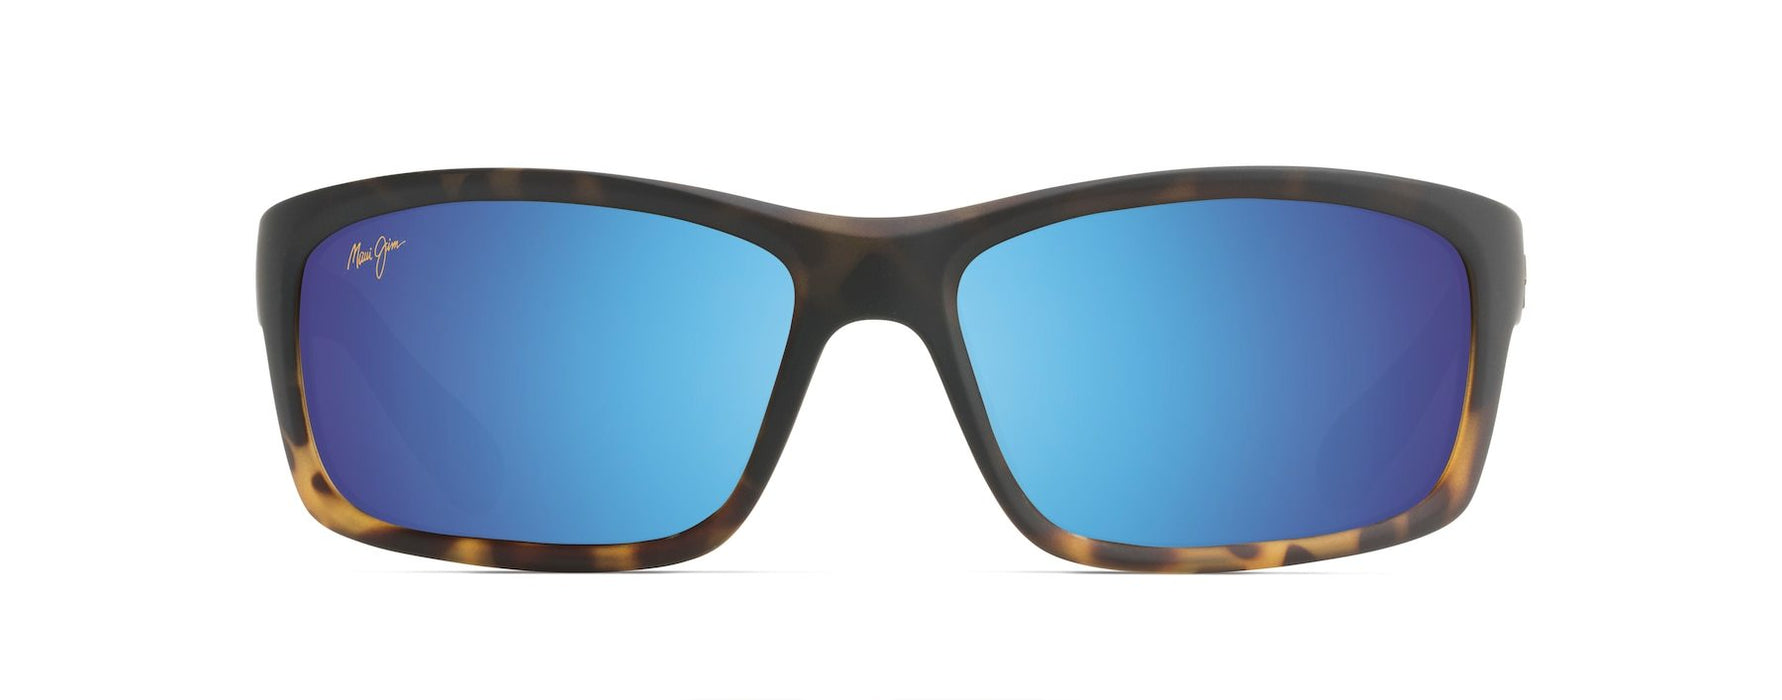 MyMaui Kanaio Coast MM766-008 Sunglasses